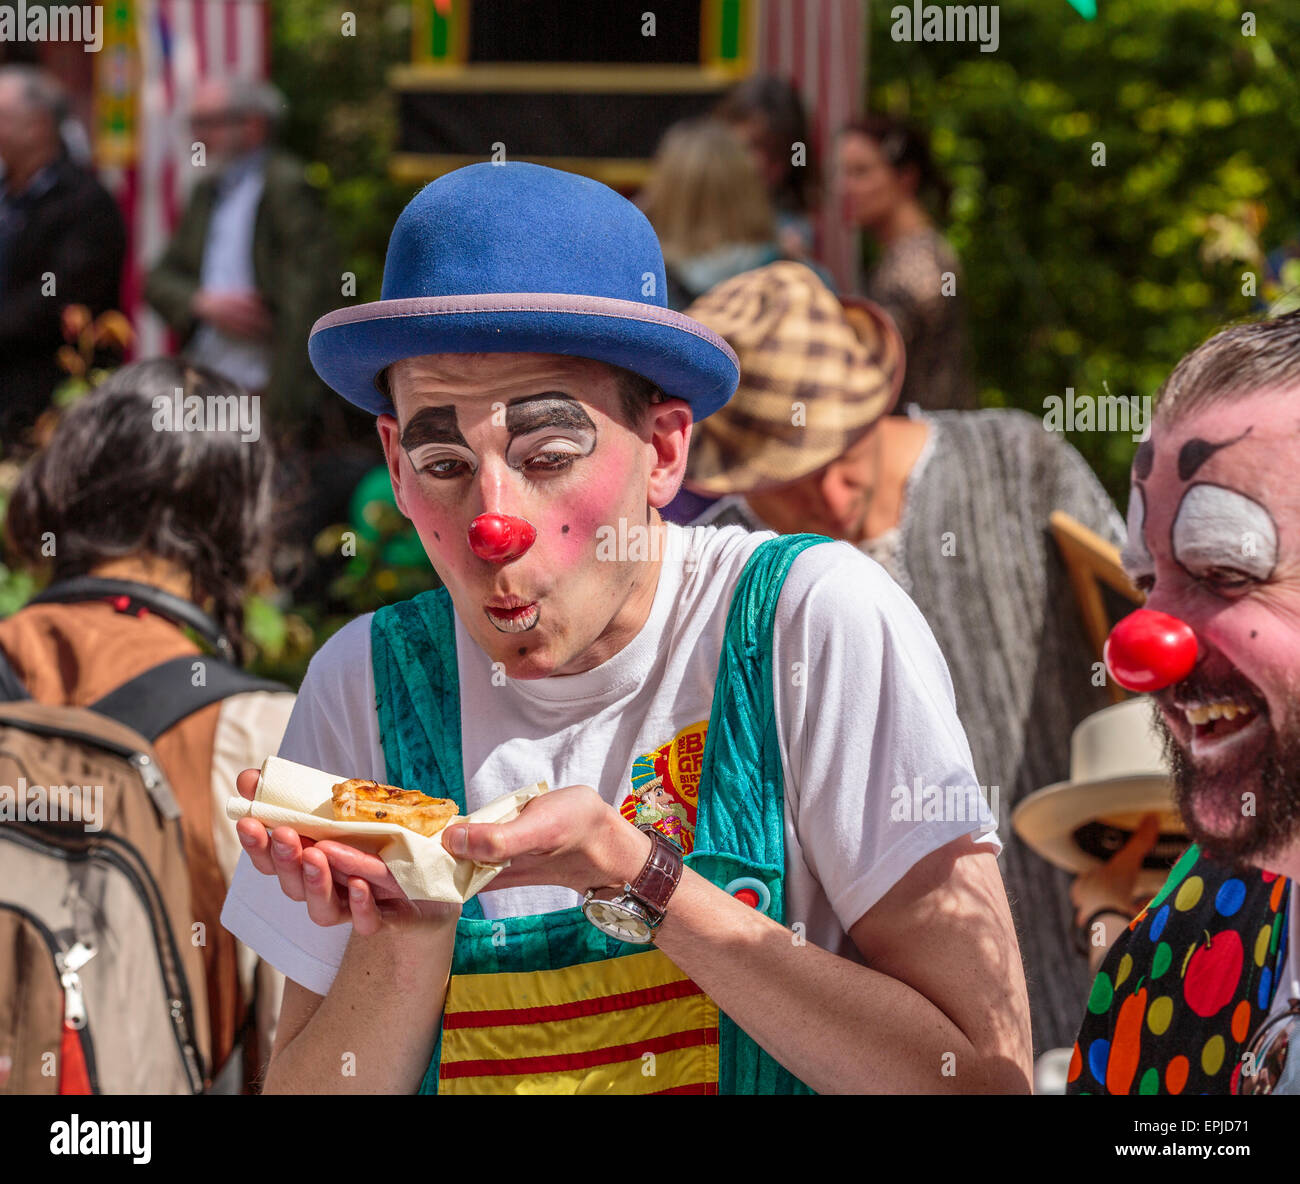 Portrait of a Clown eating a mini pizza - Stock Image